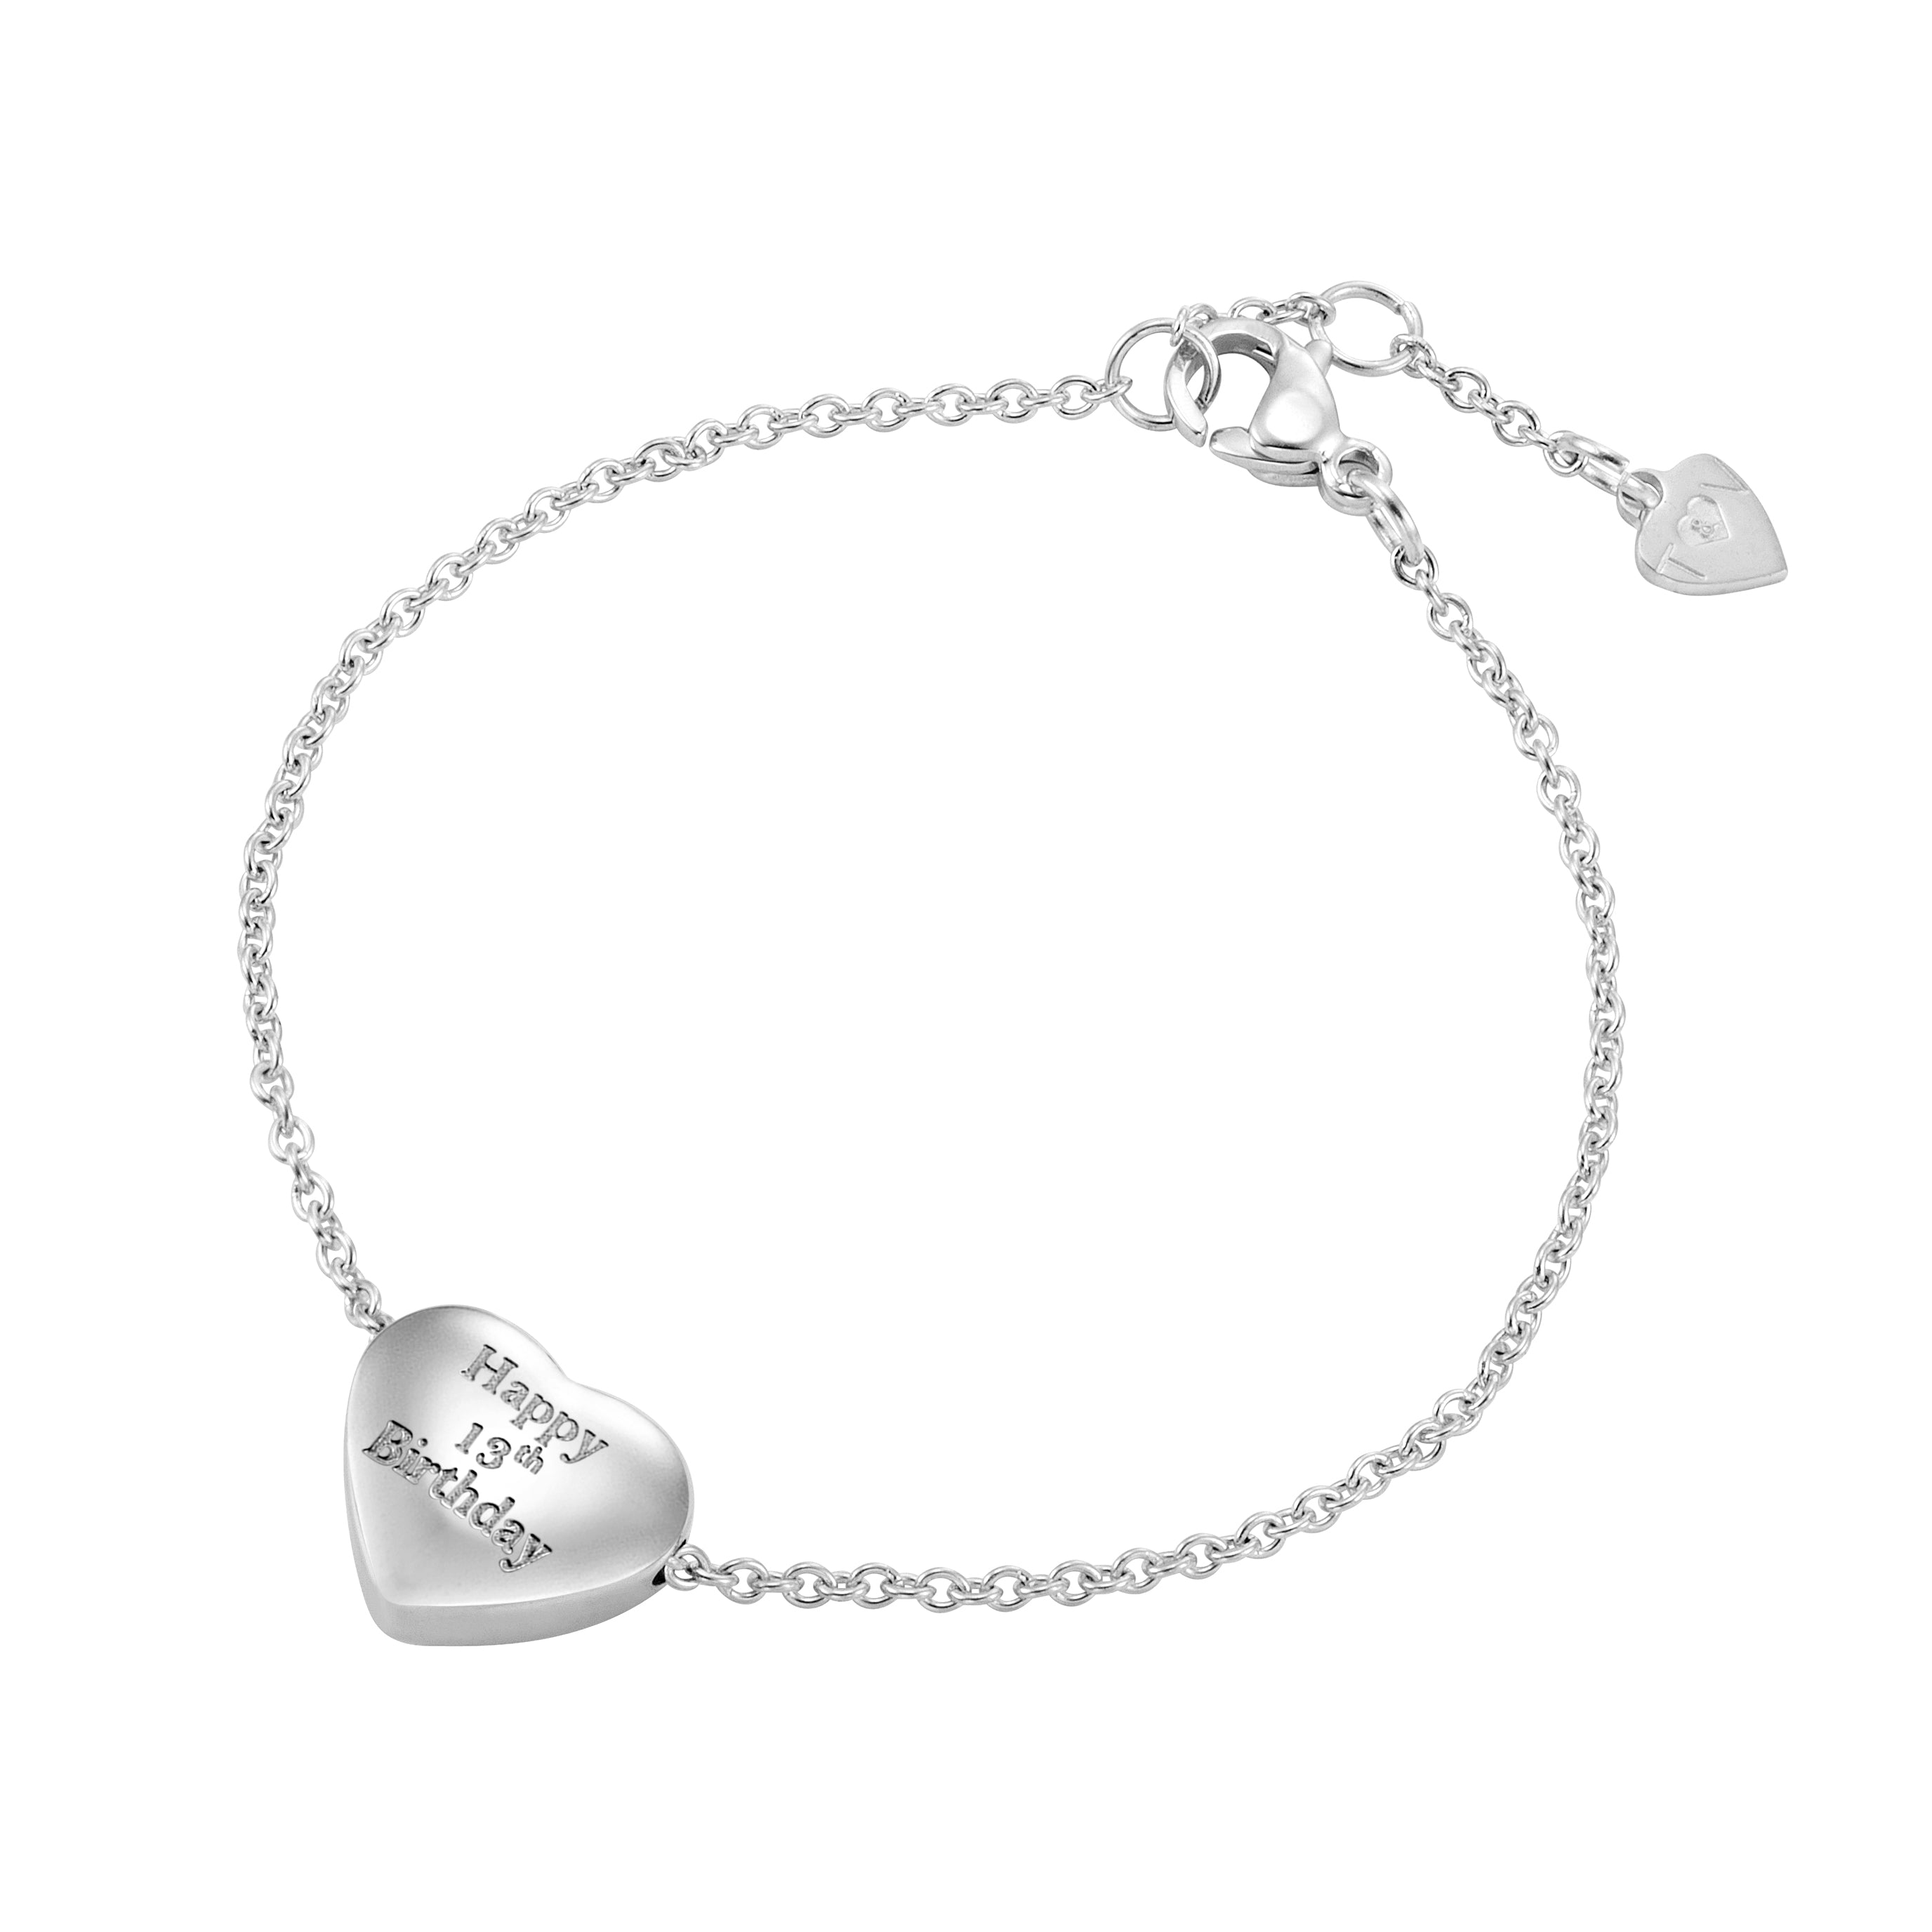 13th birthday heart pendant bracelet engraved happy 13th birthday taylor and vine silver heart pendant bracelet engraved happy 13th birthday 1 aloadofball Gallery